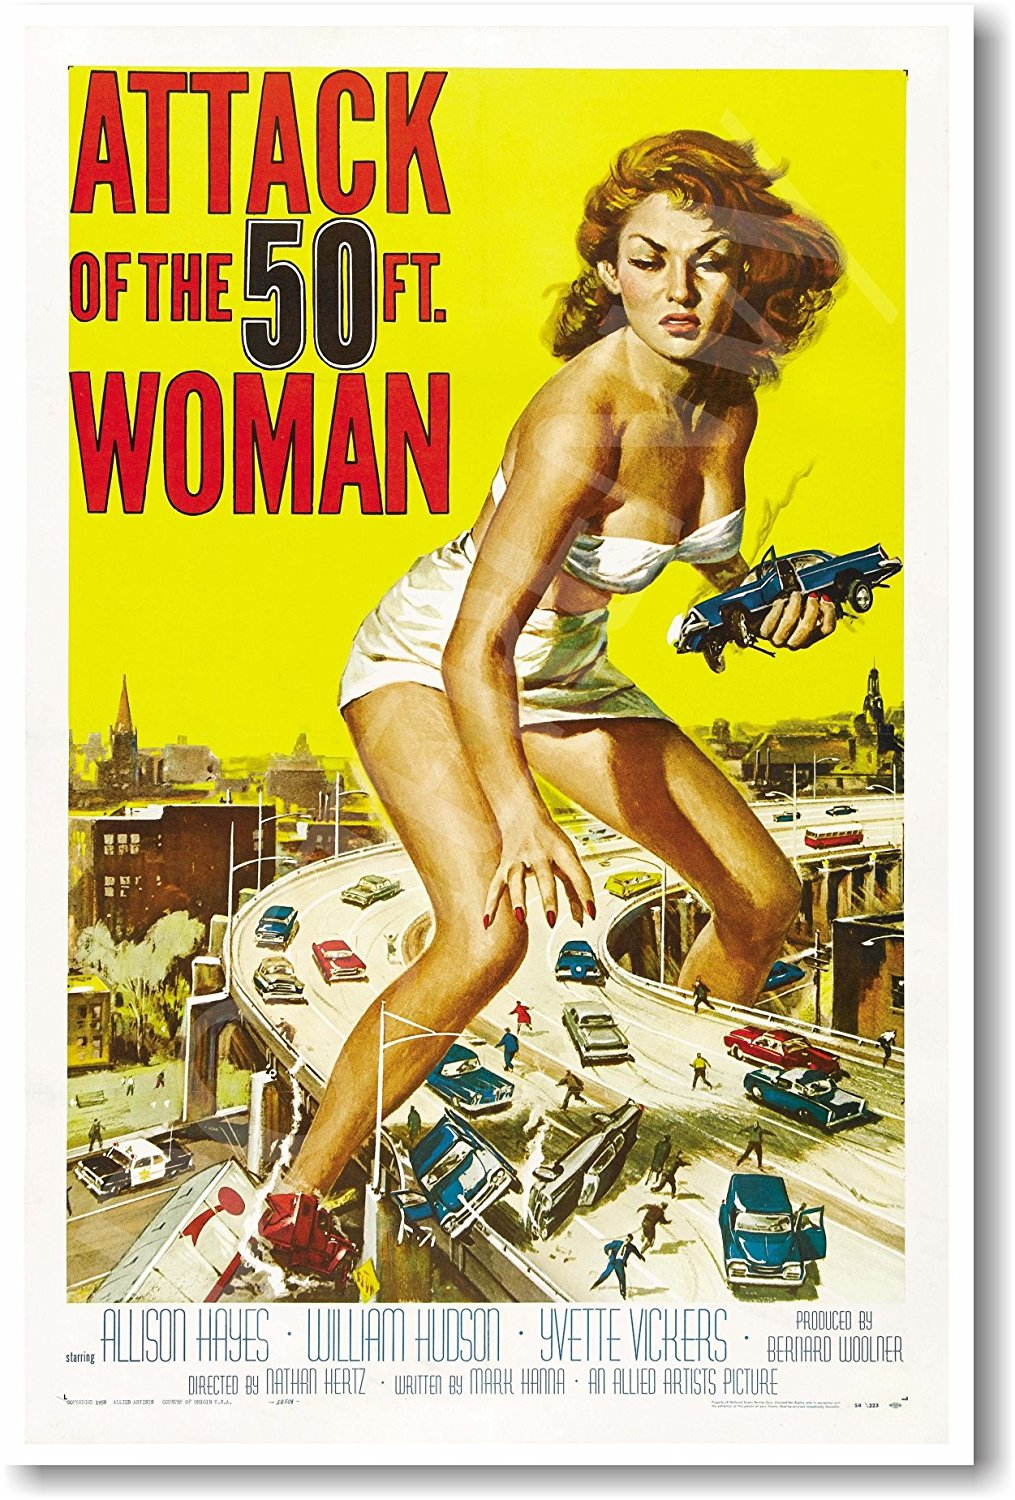 Attack of the 50 Ft. Woman - NEW Vintage Movie Poster